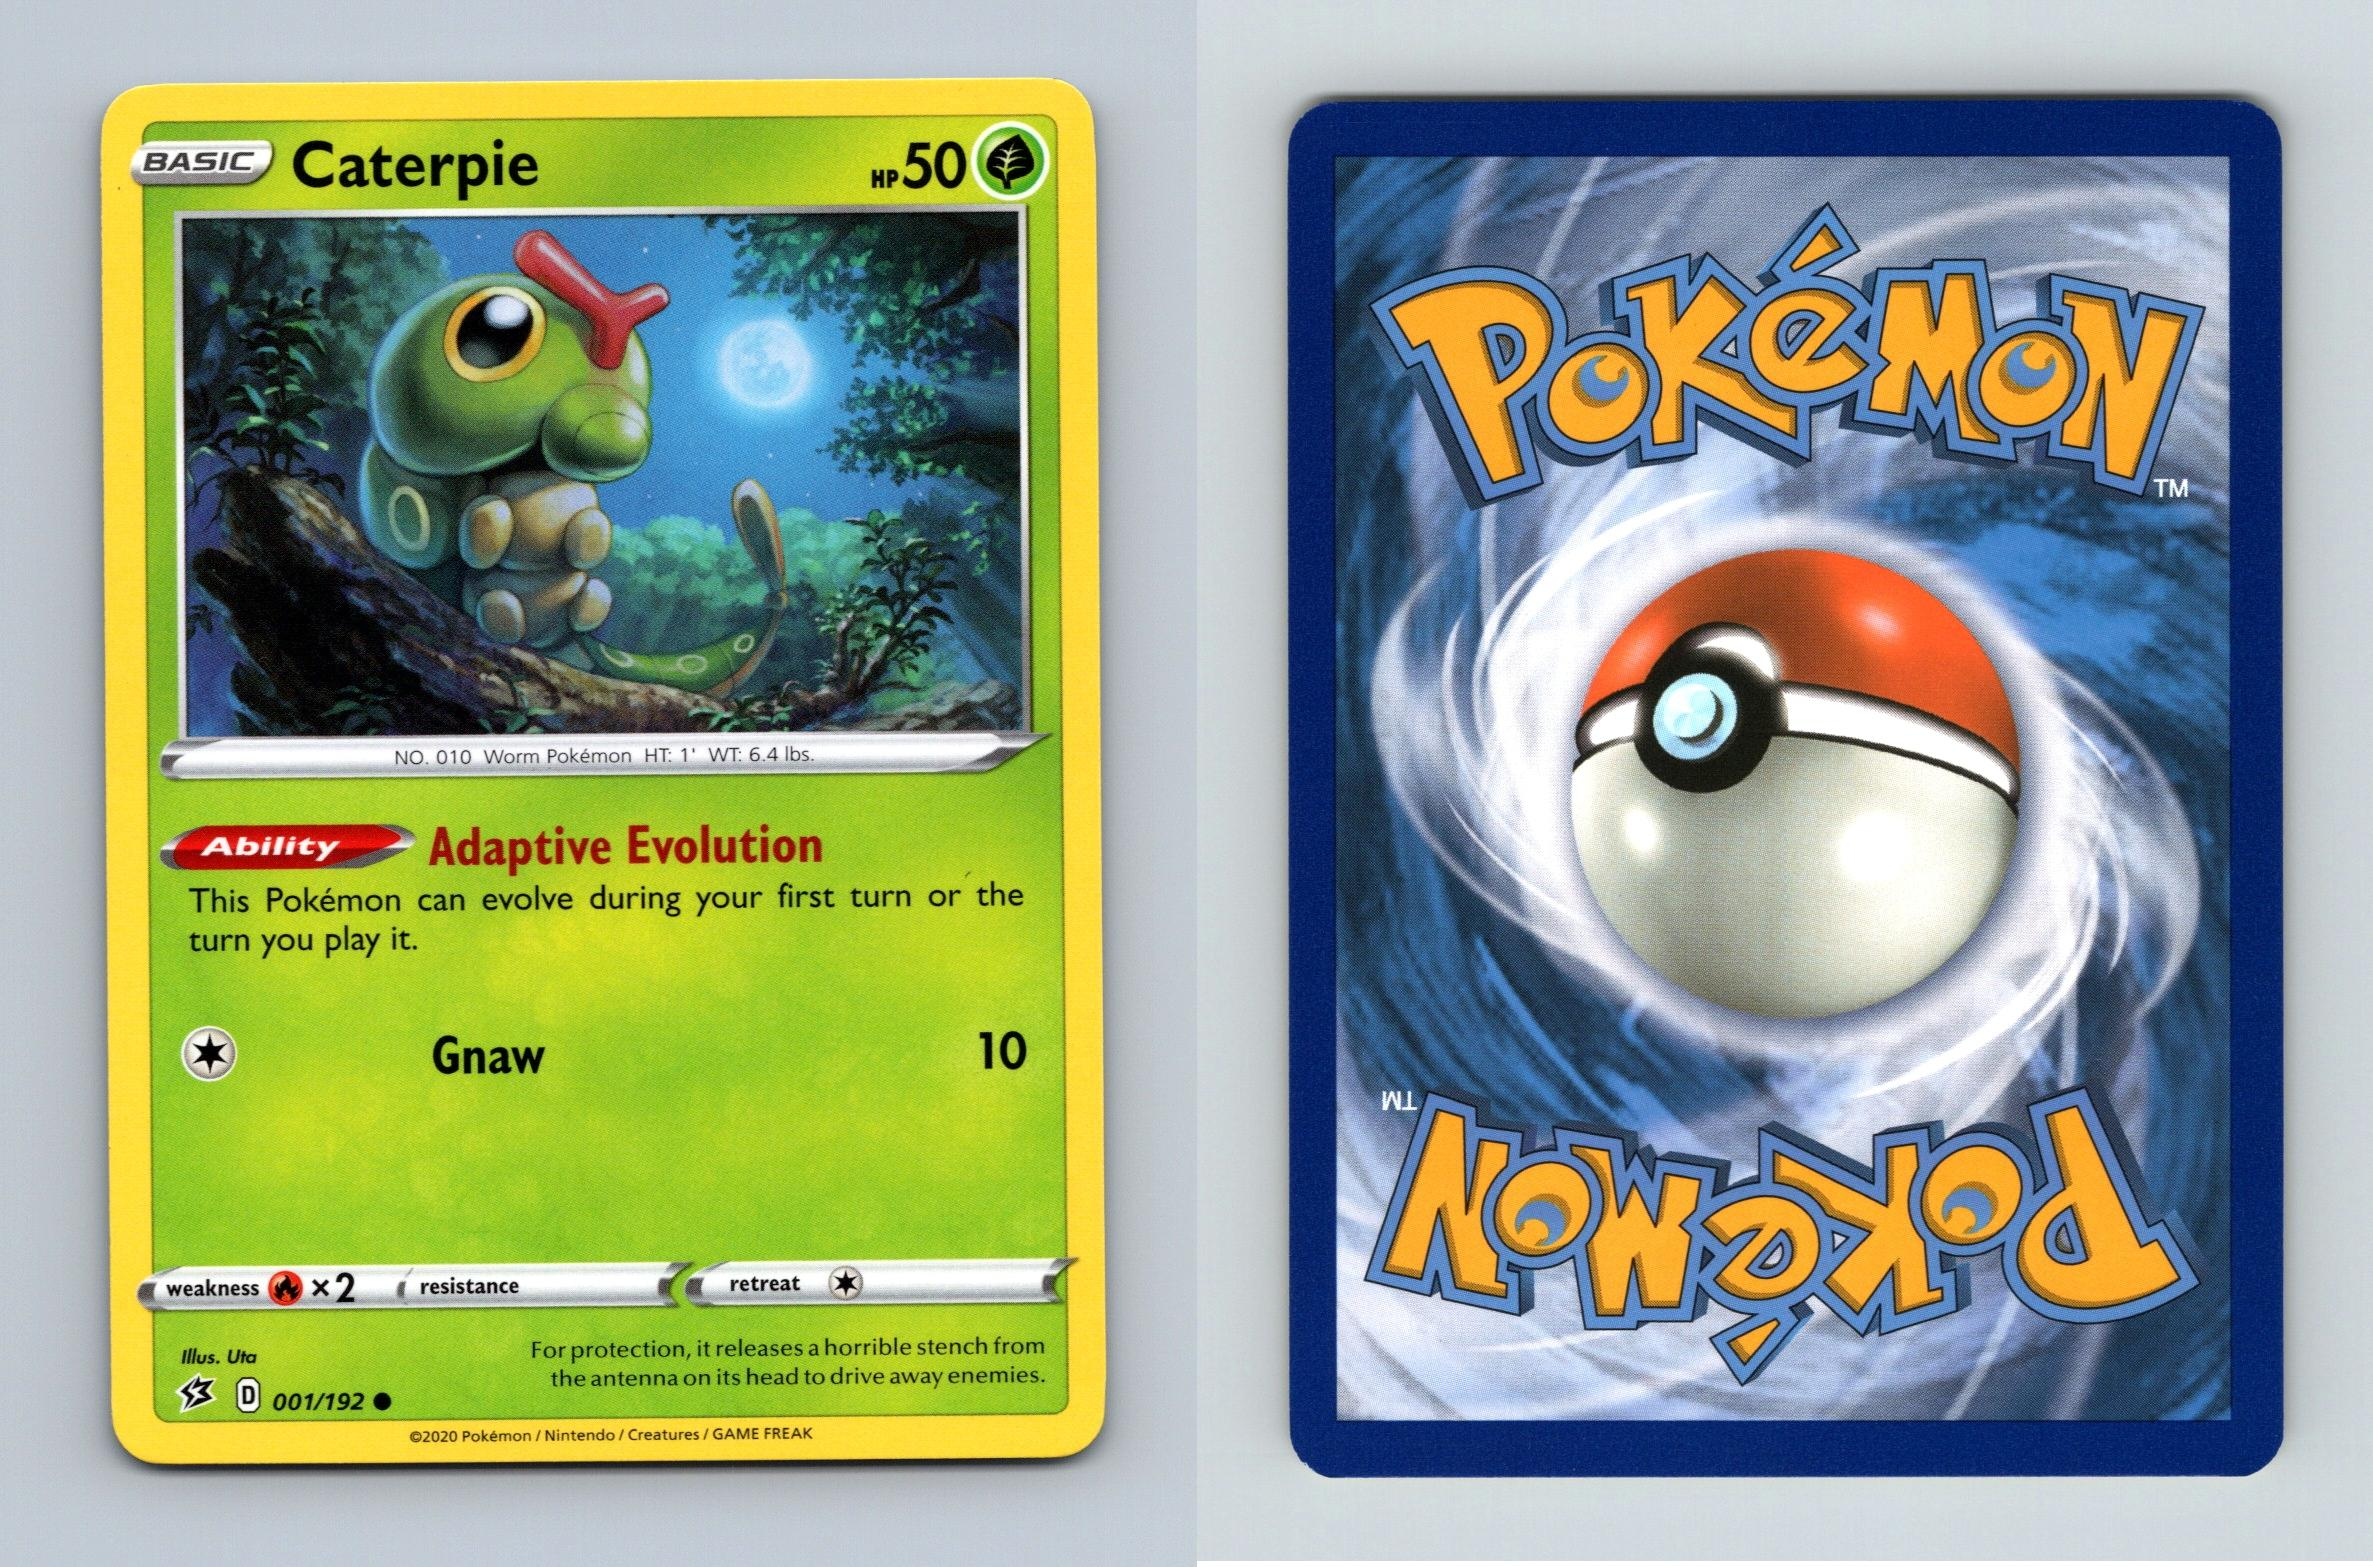 001//192 CaterpieCommonPokemon Trading Card Game Sword /& Shield Rebel Clash